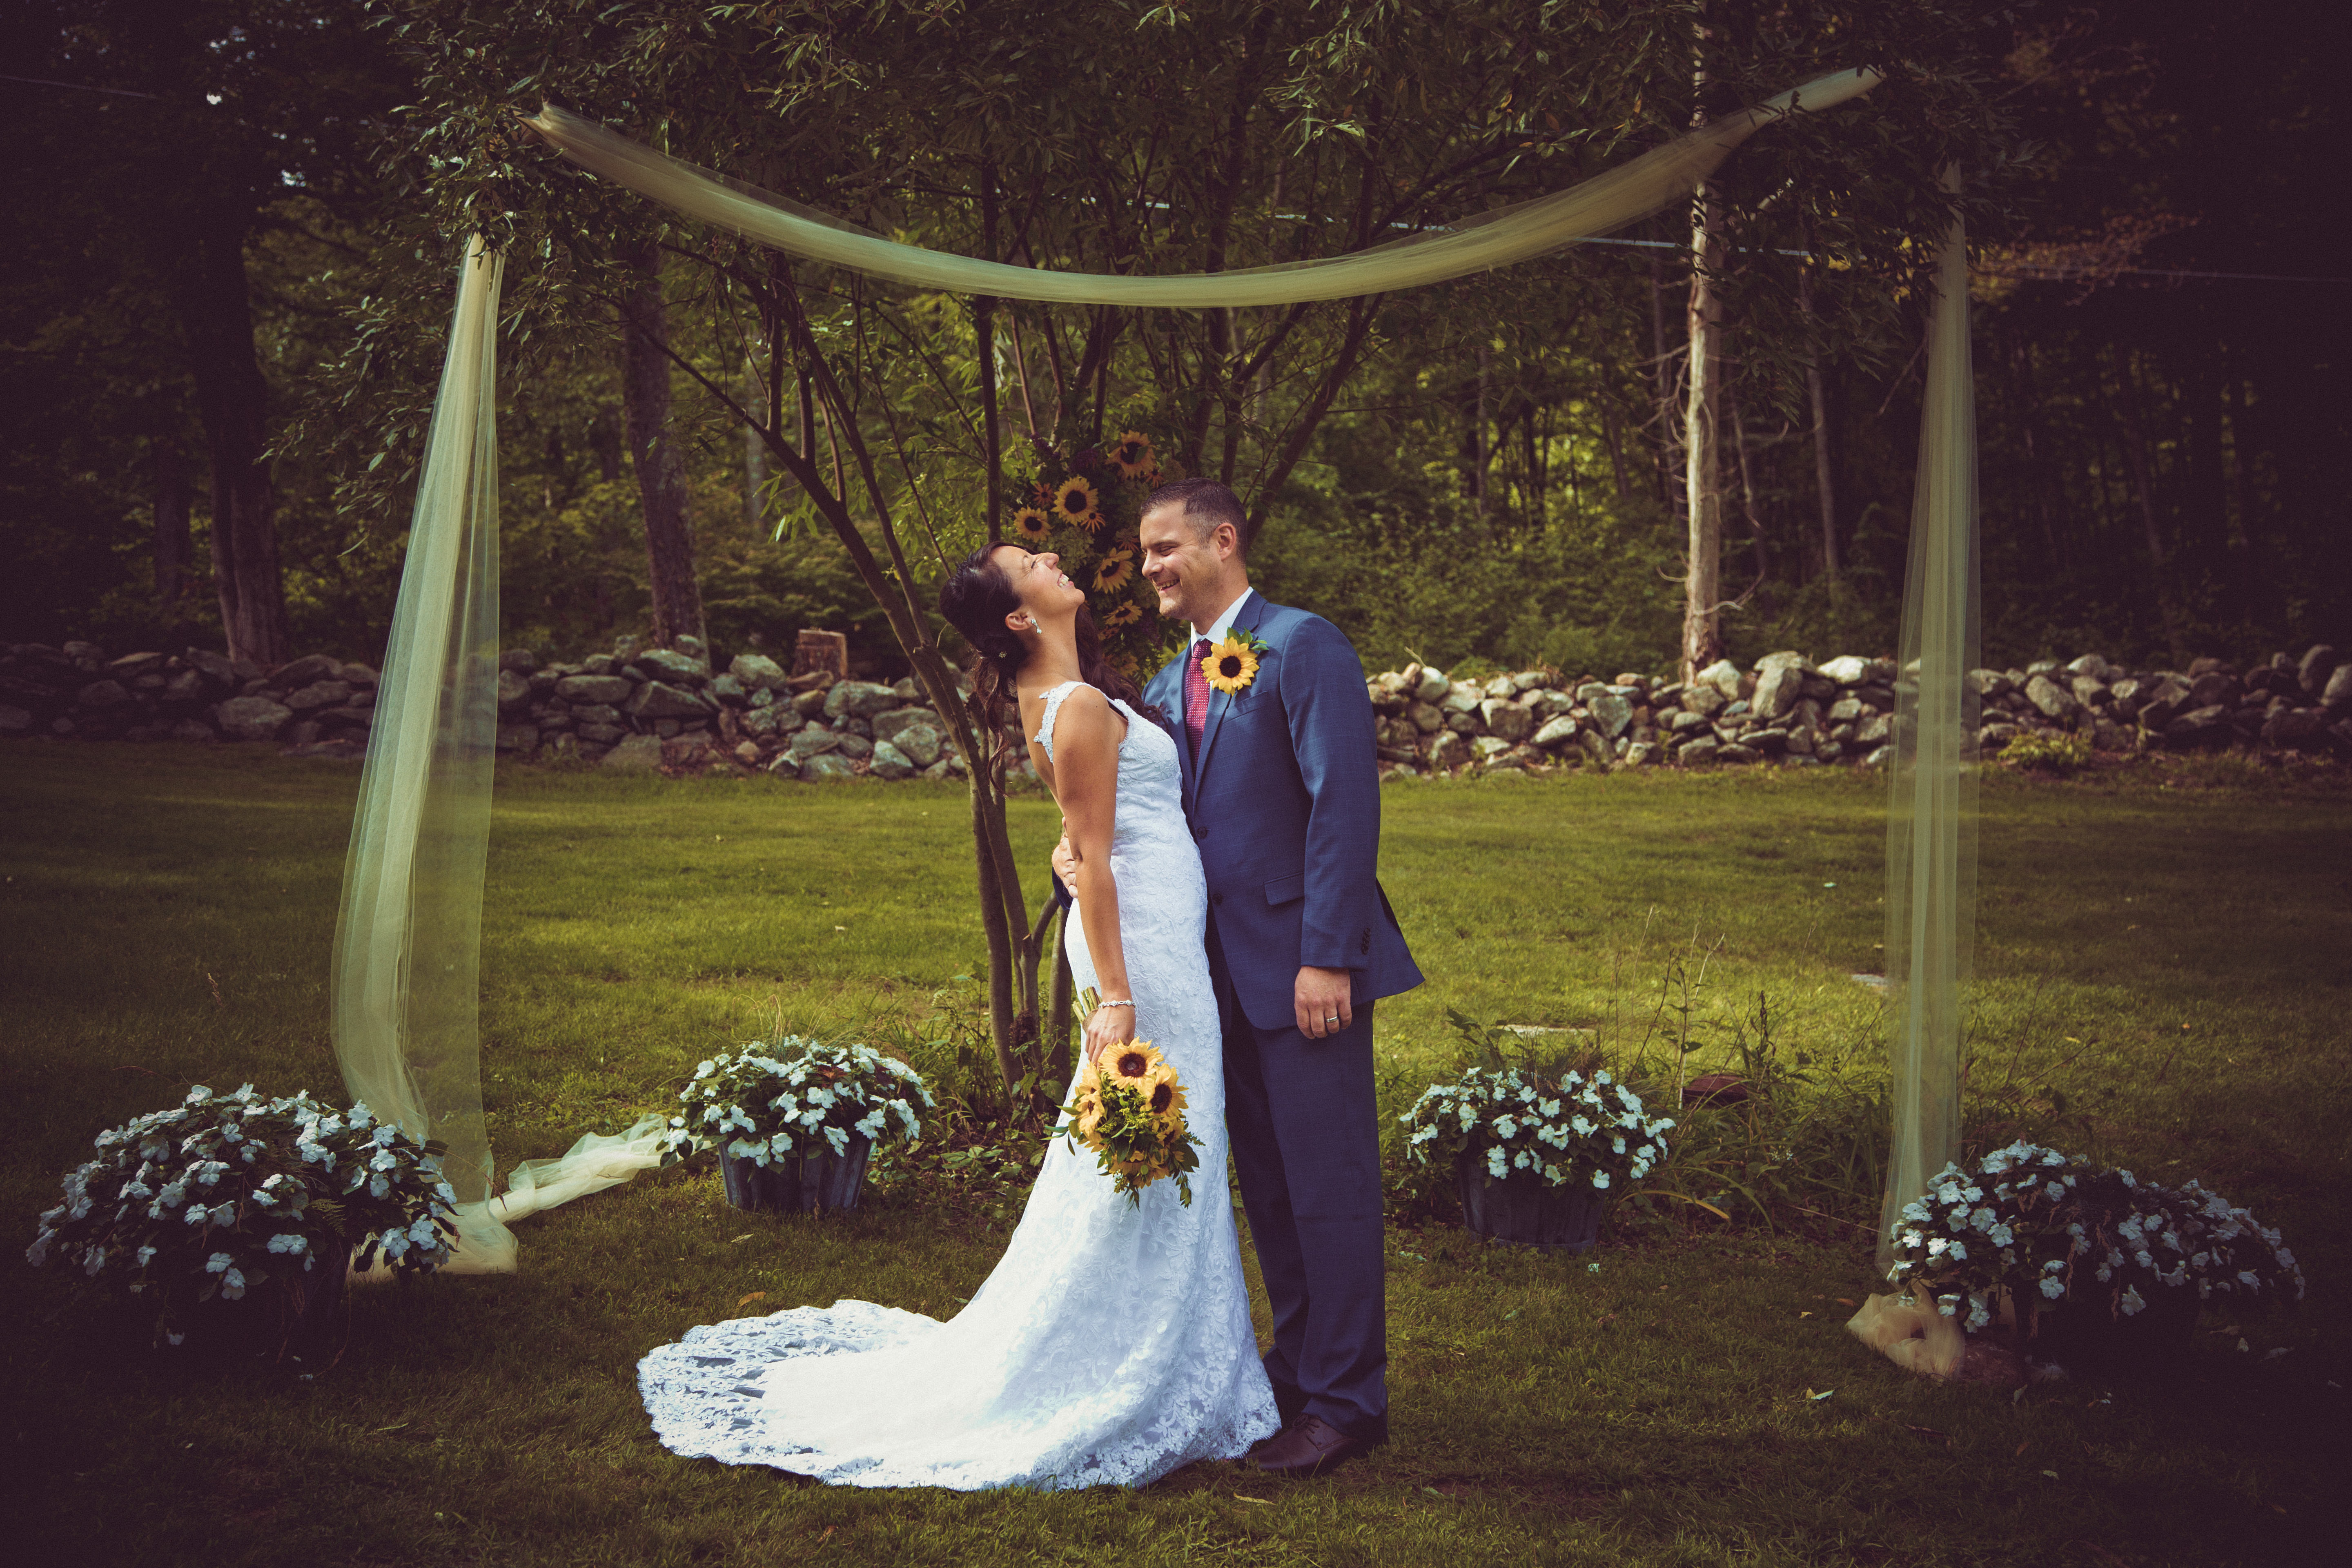 wedding photos, wedding with bride and groom, bride and groom photos, wedding altar, wedding alter, wedding images, photos from wedding, professional portrait cinematography, discount wedding cinematography, wedding cinematography Philadelphia, cinematography bridal, romantic wedding cinematography, photoshoot studios in new York, top wedding cinematography, american wedding cinematography, wedding website pictures, hindu wedding cinematography, popular wedding cinematography, wedding photo stills, best wedding cinematography near me, wedding cinematography packages new York, top 10 wedding cinematography, nyc portrait photographer, black and white wedding cinematography, cinematography in the area, cinematography from new York, wedding outdoor photoshoot, cool wedding cinematography, wedding and portrait cinematography, perfect wedding photos, photographer in wedding, local wedding cinematography, top rated wedding cinematography, wedding photo sites, indian wedding photographer new York, how to be a wedding photographer, phoenix wedding cinematography, cinematography in nyc prices, nj wedding cinematography, wedding portrait photographer, city wedding photos, contemporary wedding photographer, the best wedding photos, private photographer, washington dc wedding photographer, local wedding cinematography near me, wedding cinematography long island, professional photographer new York, stunning wedding cinematography, informal wedding cinematography, top portrait cinematography, best engagement cinematography, artistic wedding photographer, wedding photo pictures,